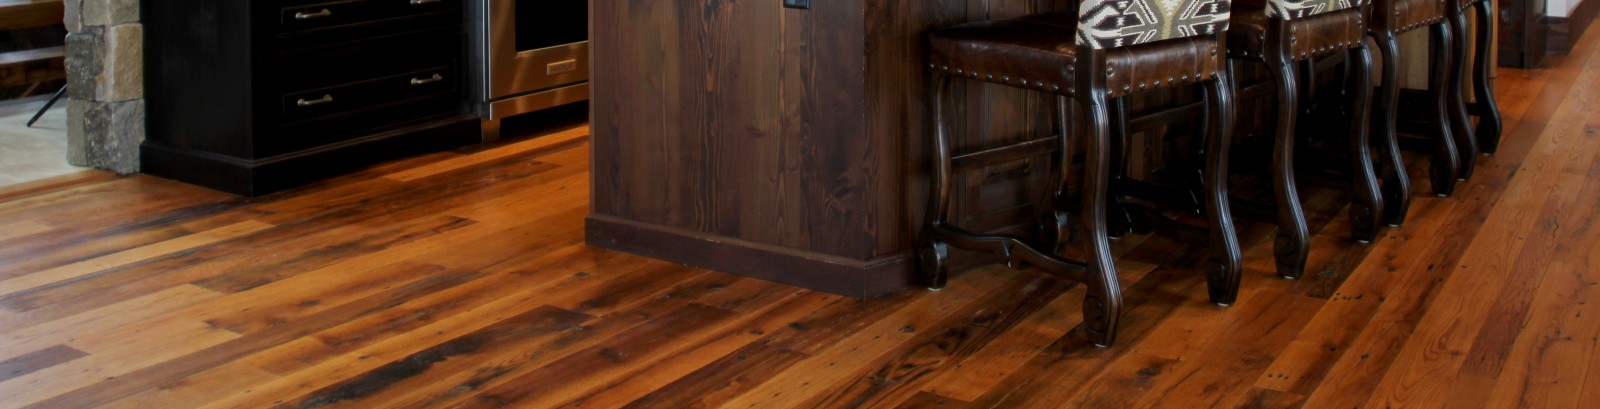 Reclaimed South Face Oak Flooring displays the beautiful color variation found in this material